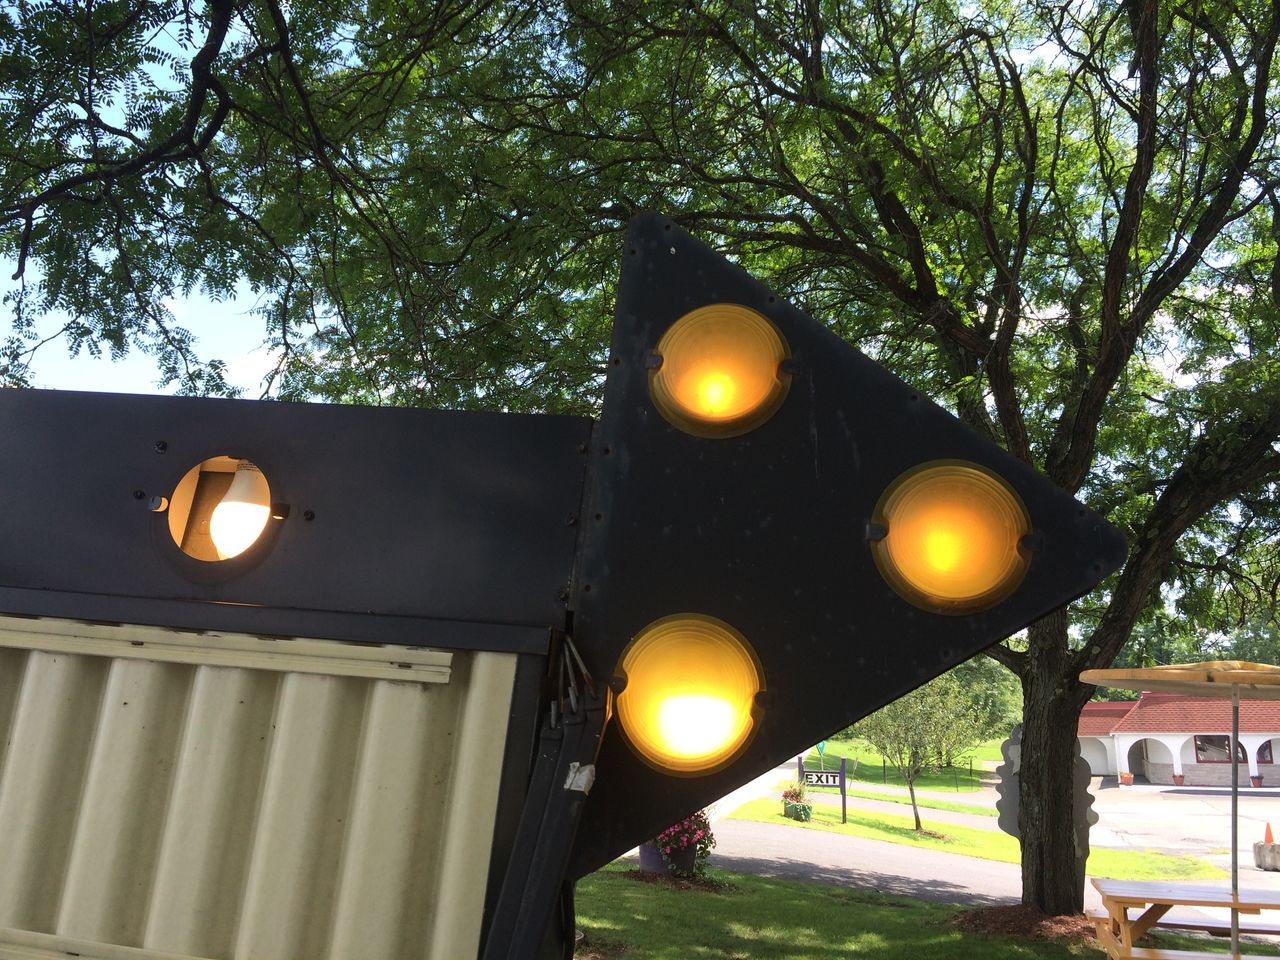 LOW ANGLE VIEW OF ILLUMINATED LIGHTING EQUIPMENT AGAINST SKY